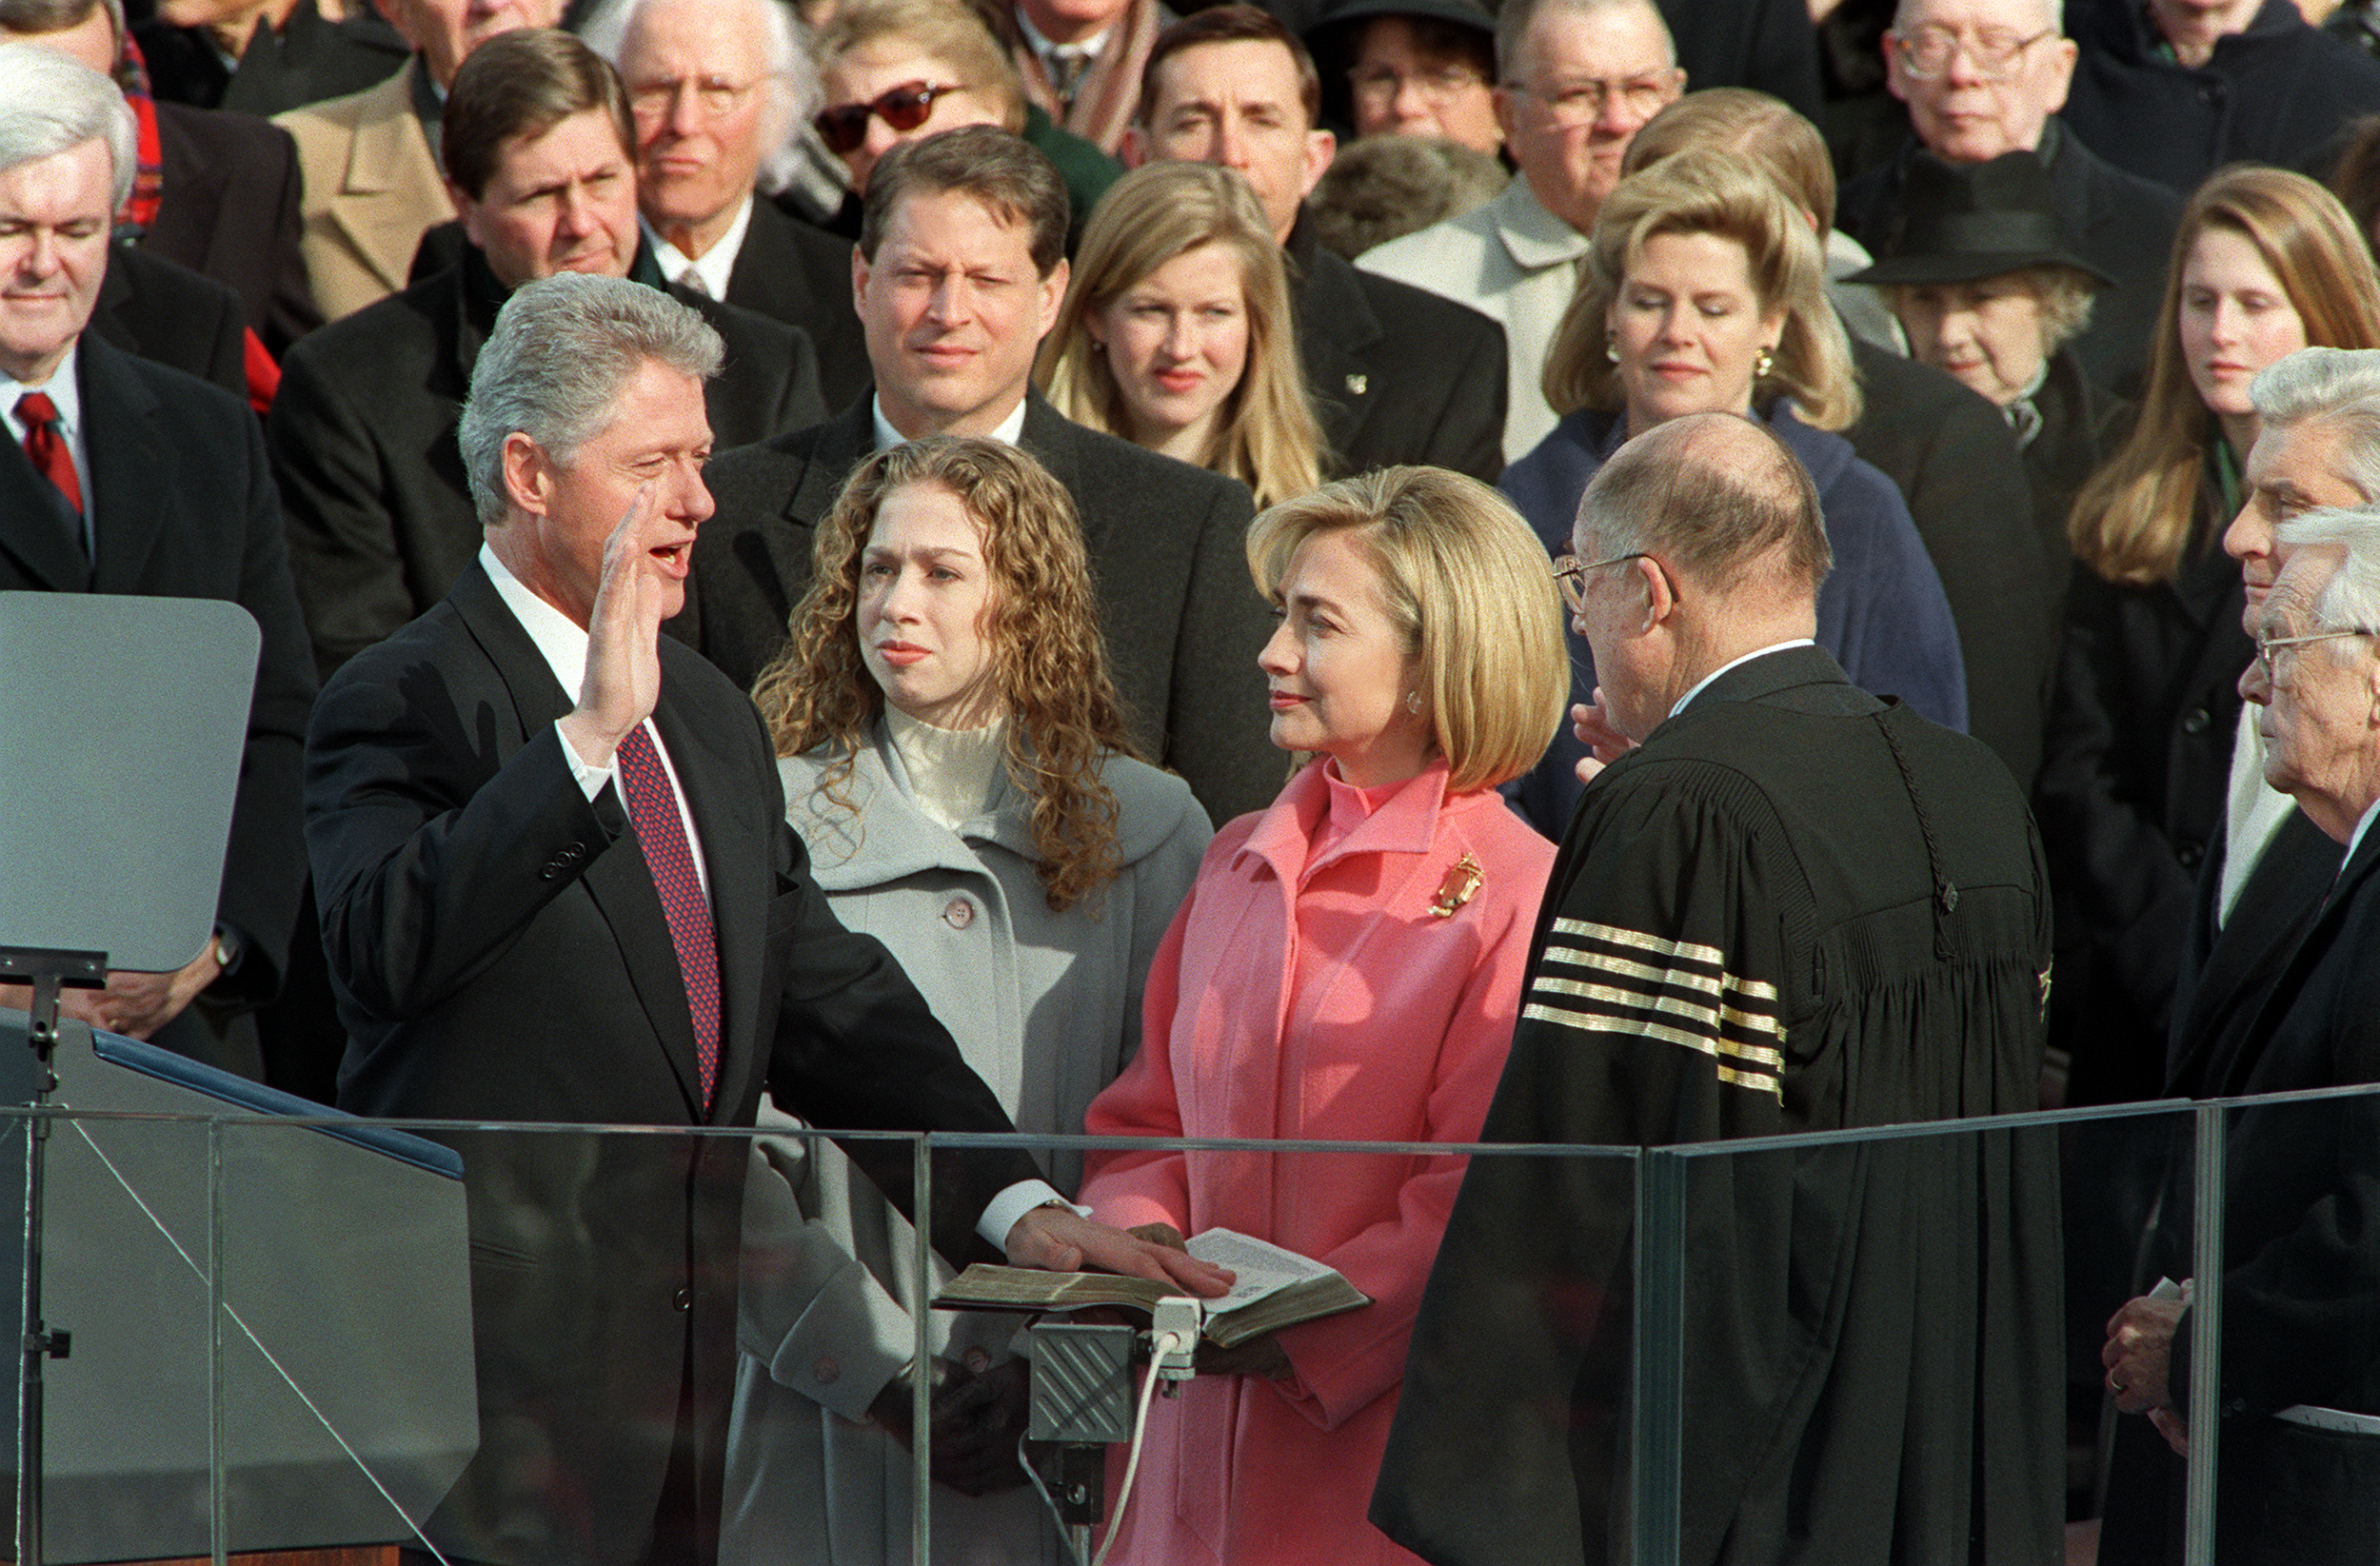 Bill Clinton is sworn in for his second term as president of the United States, on Capitol Hill in Washington, DC, on Jan. 20, 1997.